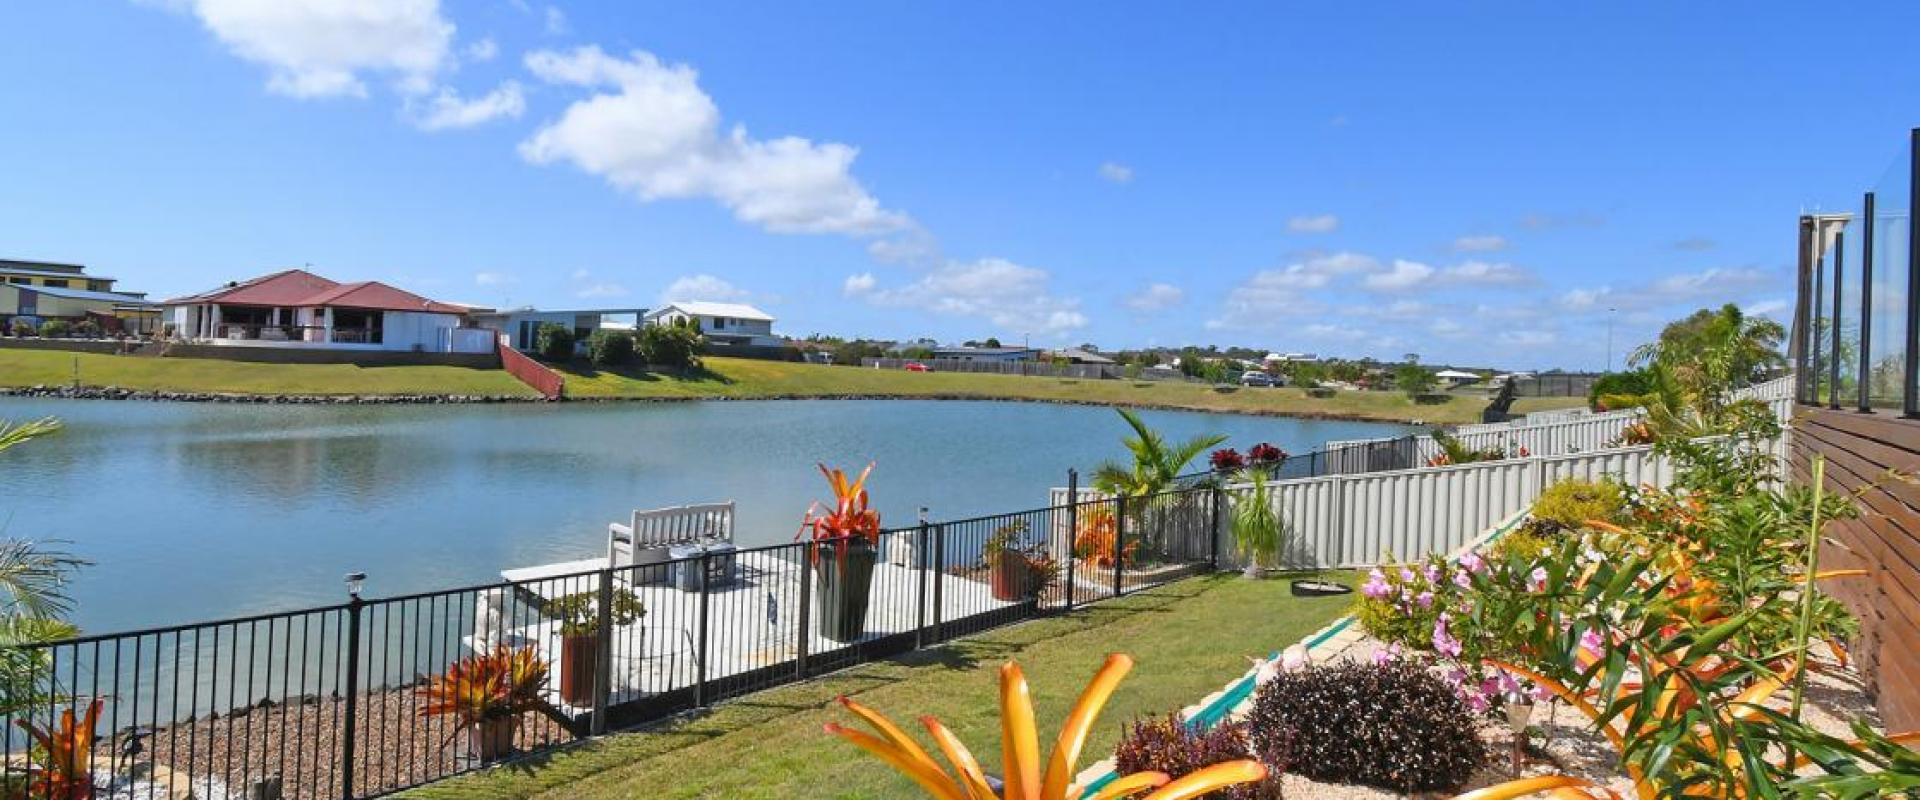 WATERFRONT PREMIER PROPERTY WITH A JETTY ELEVATED 7 x 3 PEBBLECRETE SWIMMING POOL, 6 x 3.5 SHED, 9 x 3.5 CARAVAN PORT, 6.6kW SOLAR SYSTEM, DUCTED A/C.